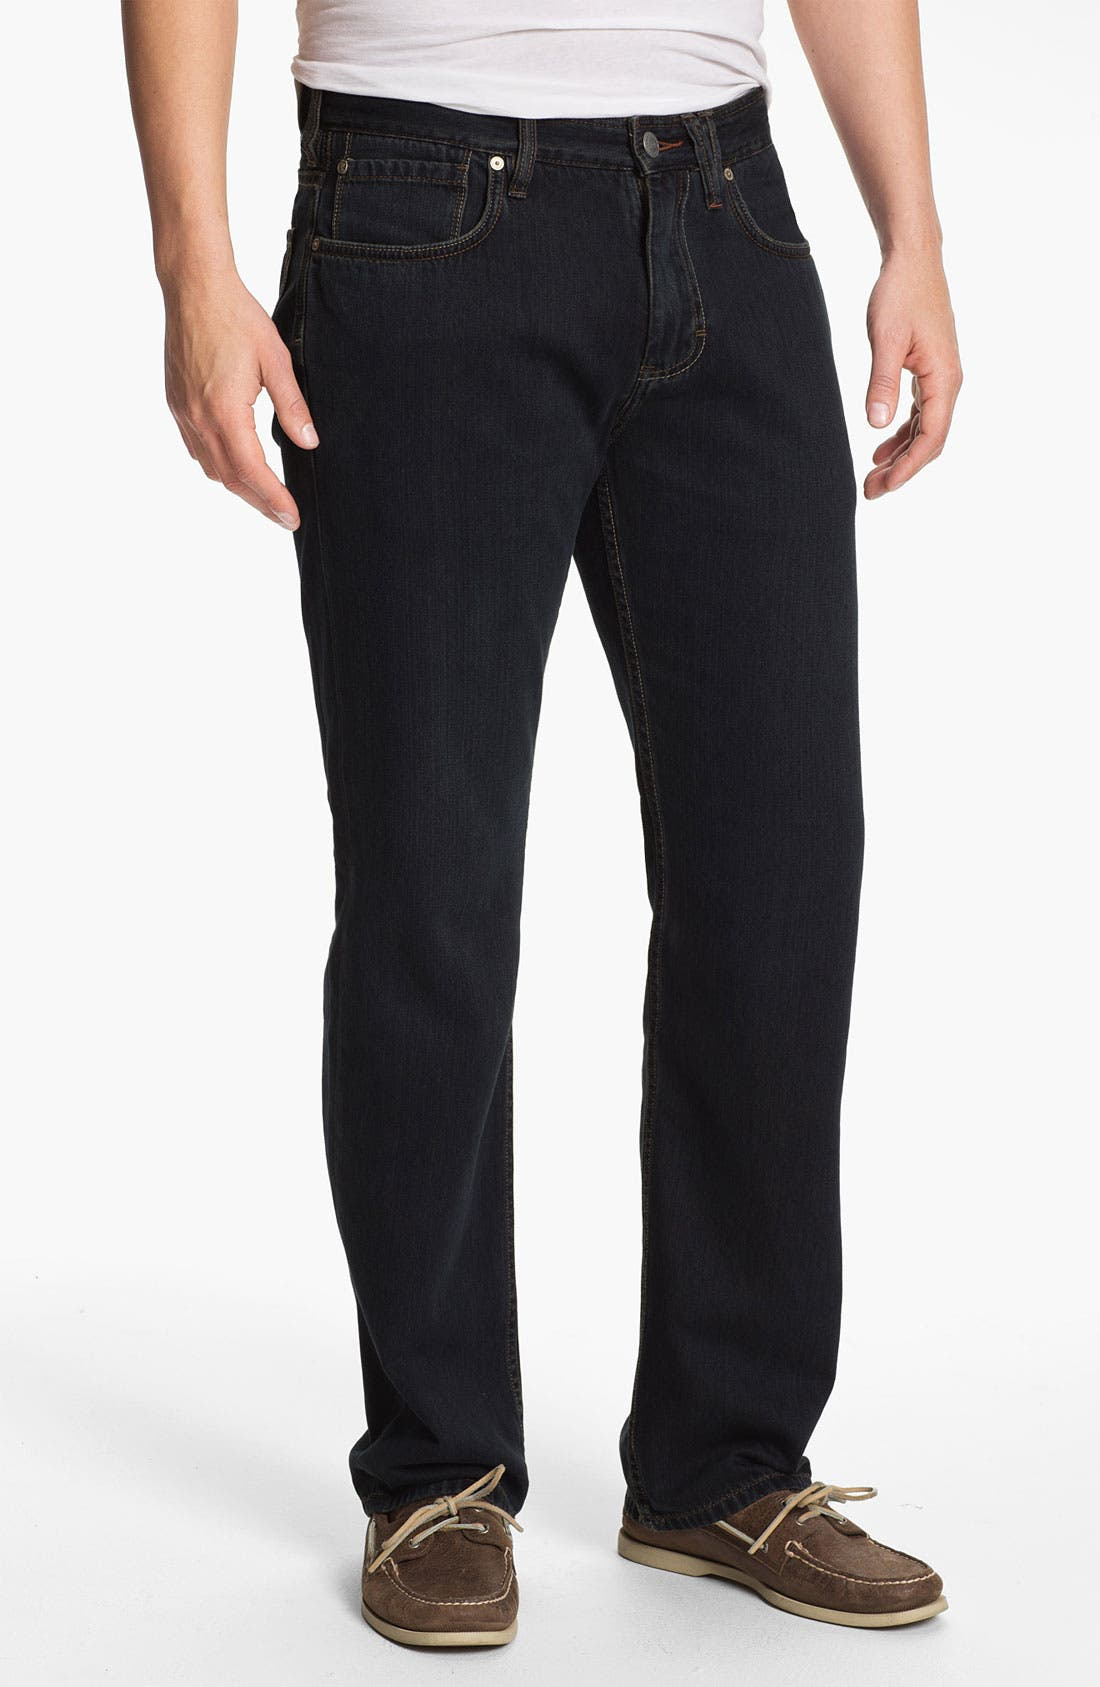 Main Image - Tommy Bahama Denim 'Coastal Island Ease' Straight Leg Jeans (Black Overdye)